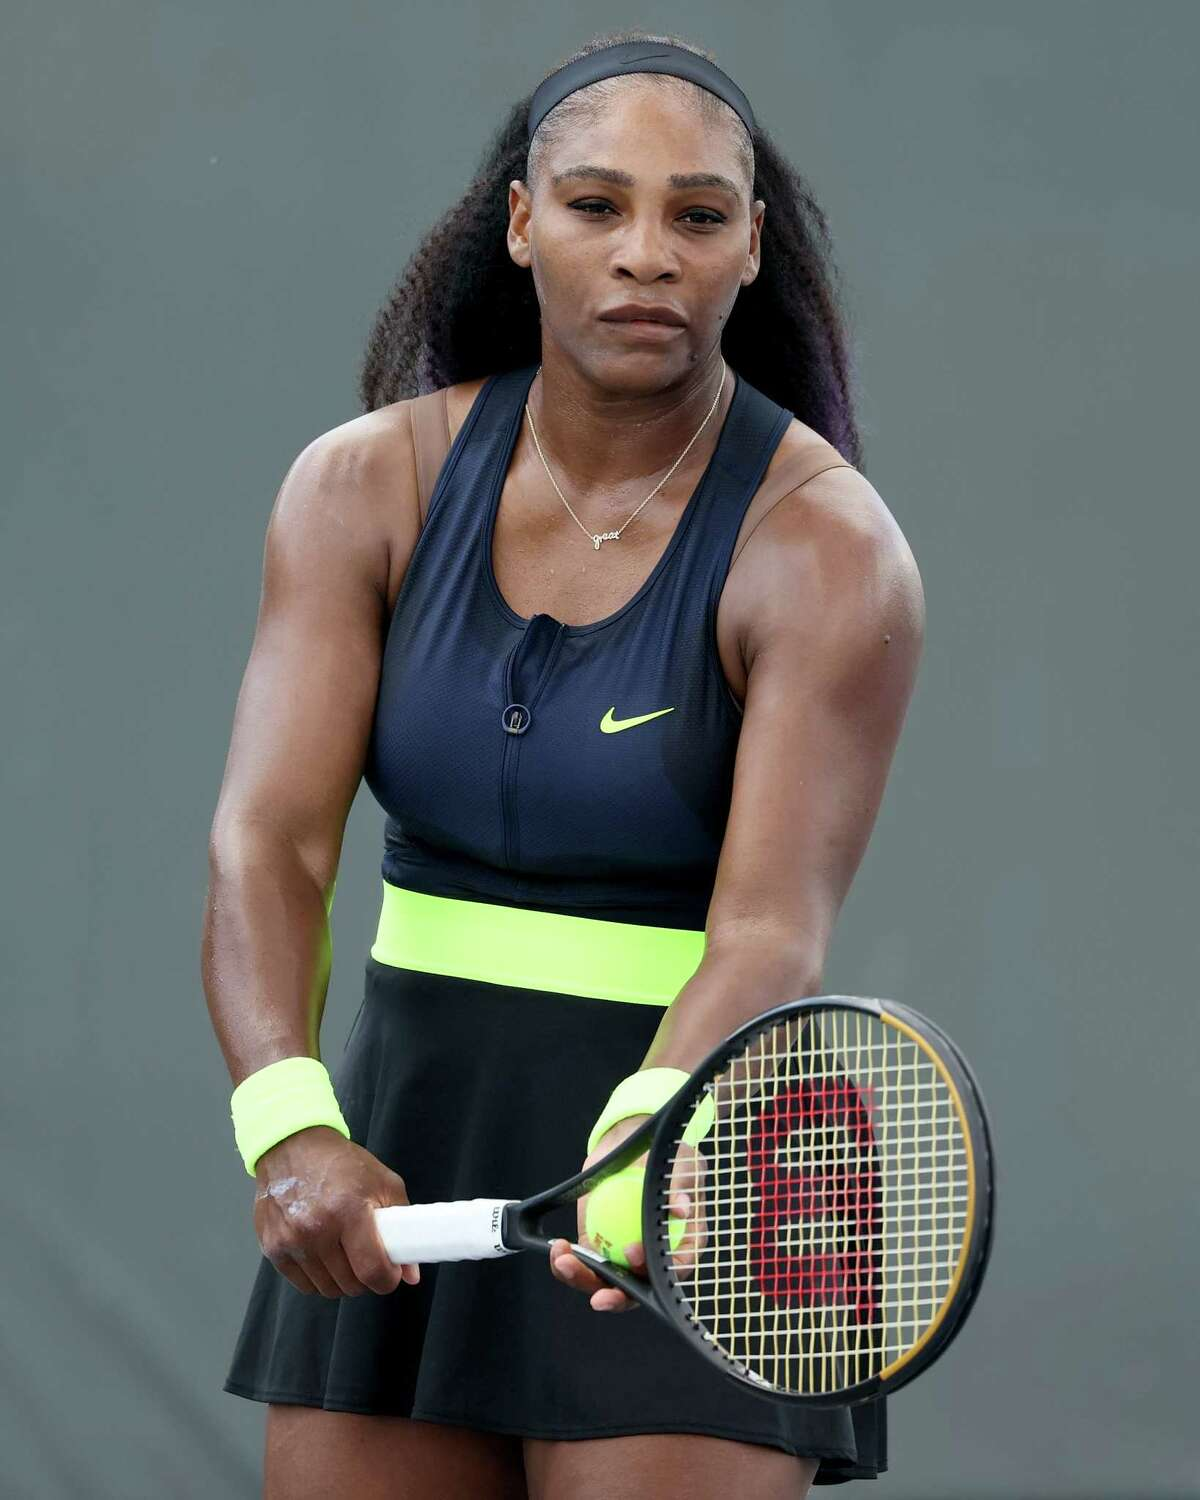 LEXINGTON, KENTUCKY - AUGUST 13: Serena Williams serves during her match against Venus Williams during Top Seed Open - Day 4 at the Top Seed Tennis Club on August 13, 2020 in Lexington, Kentucky. (Photo by Dylan Buell/Getty Images)